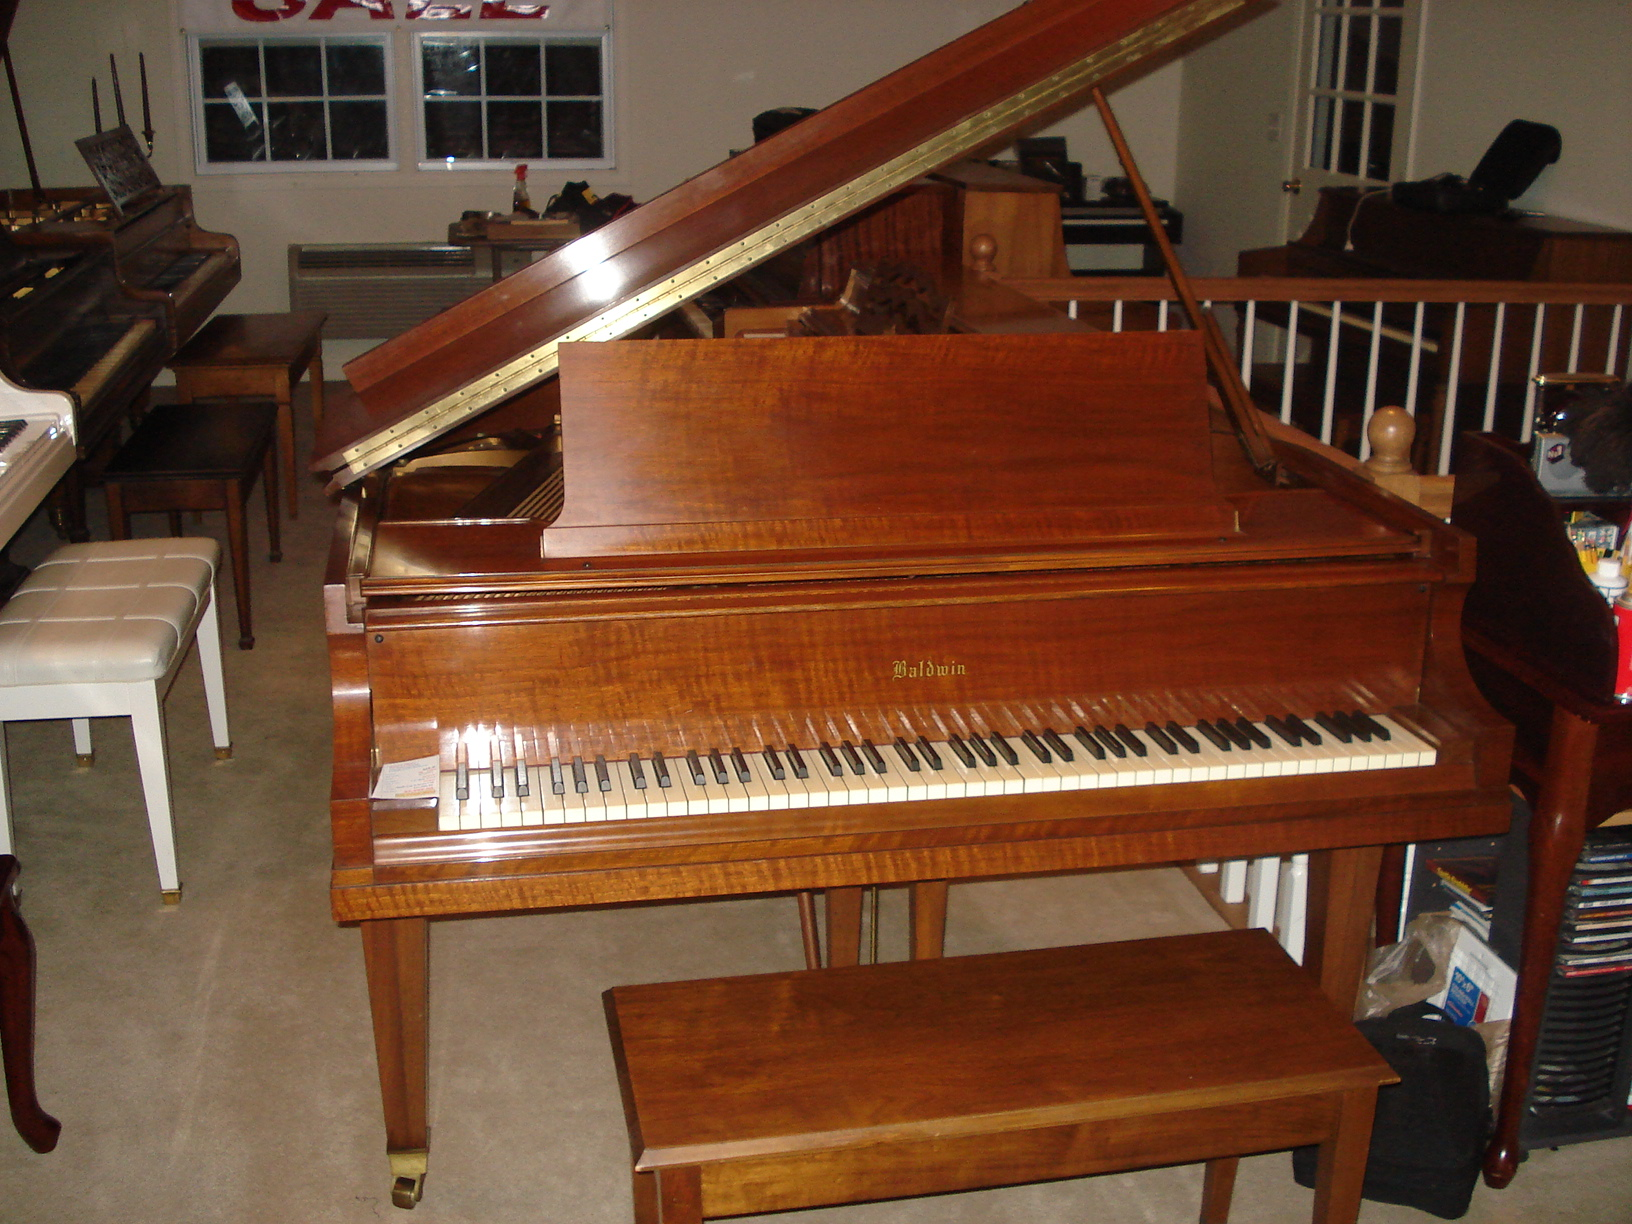 1954 Baldwin Baby Grand